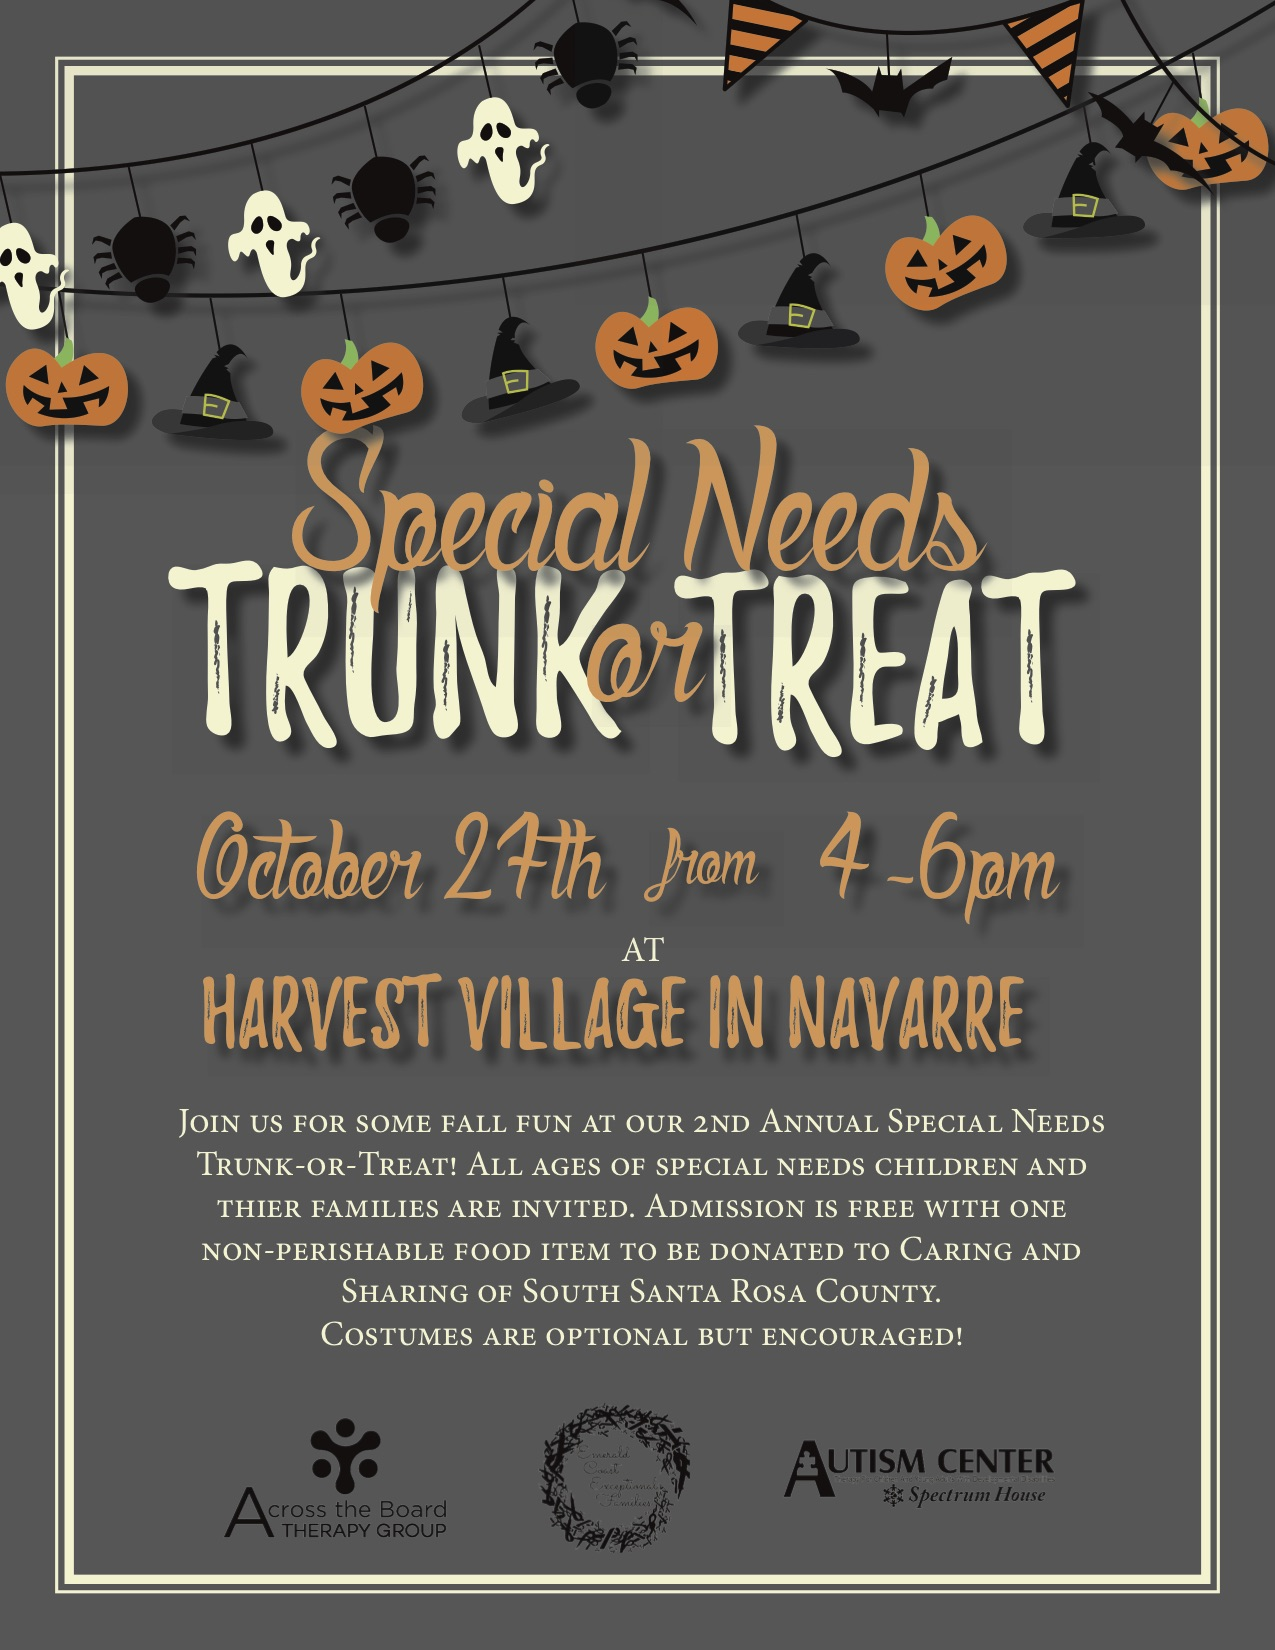 ECEF_Special Needs Trunk or Treat